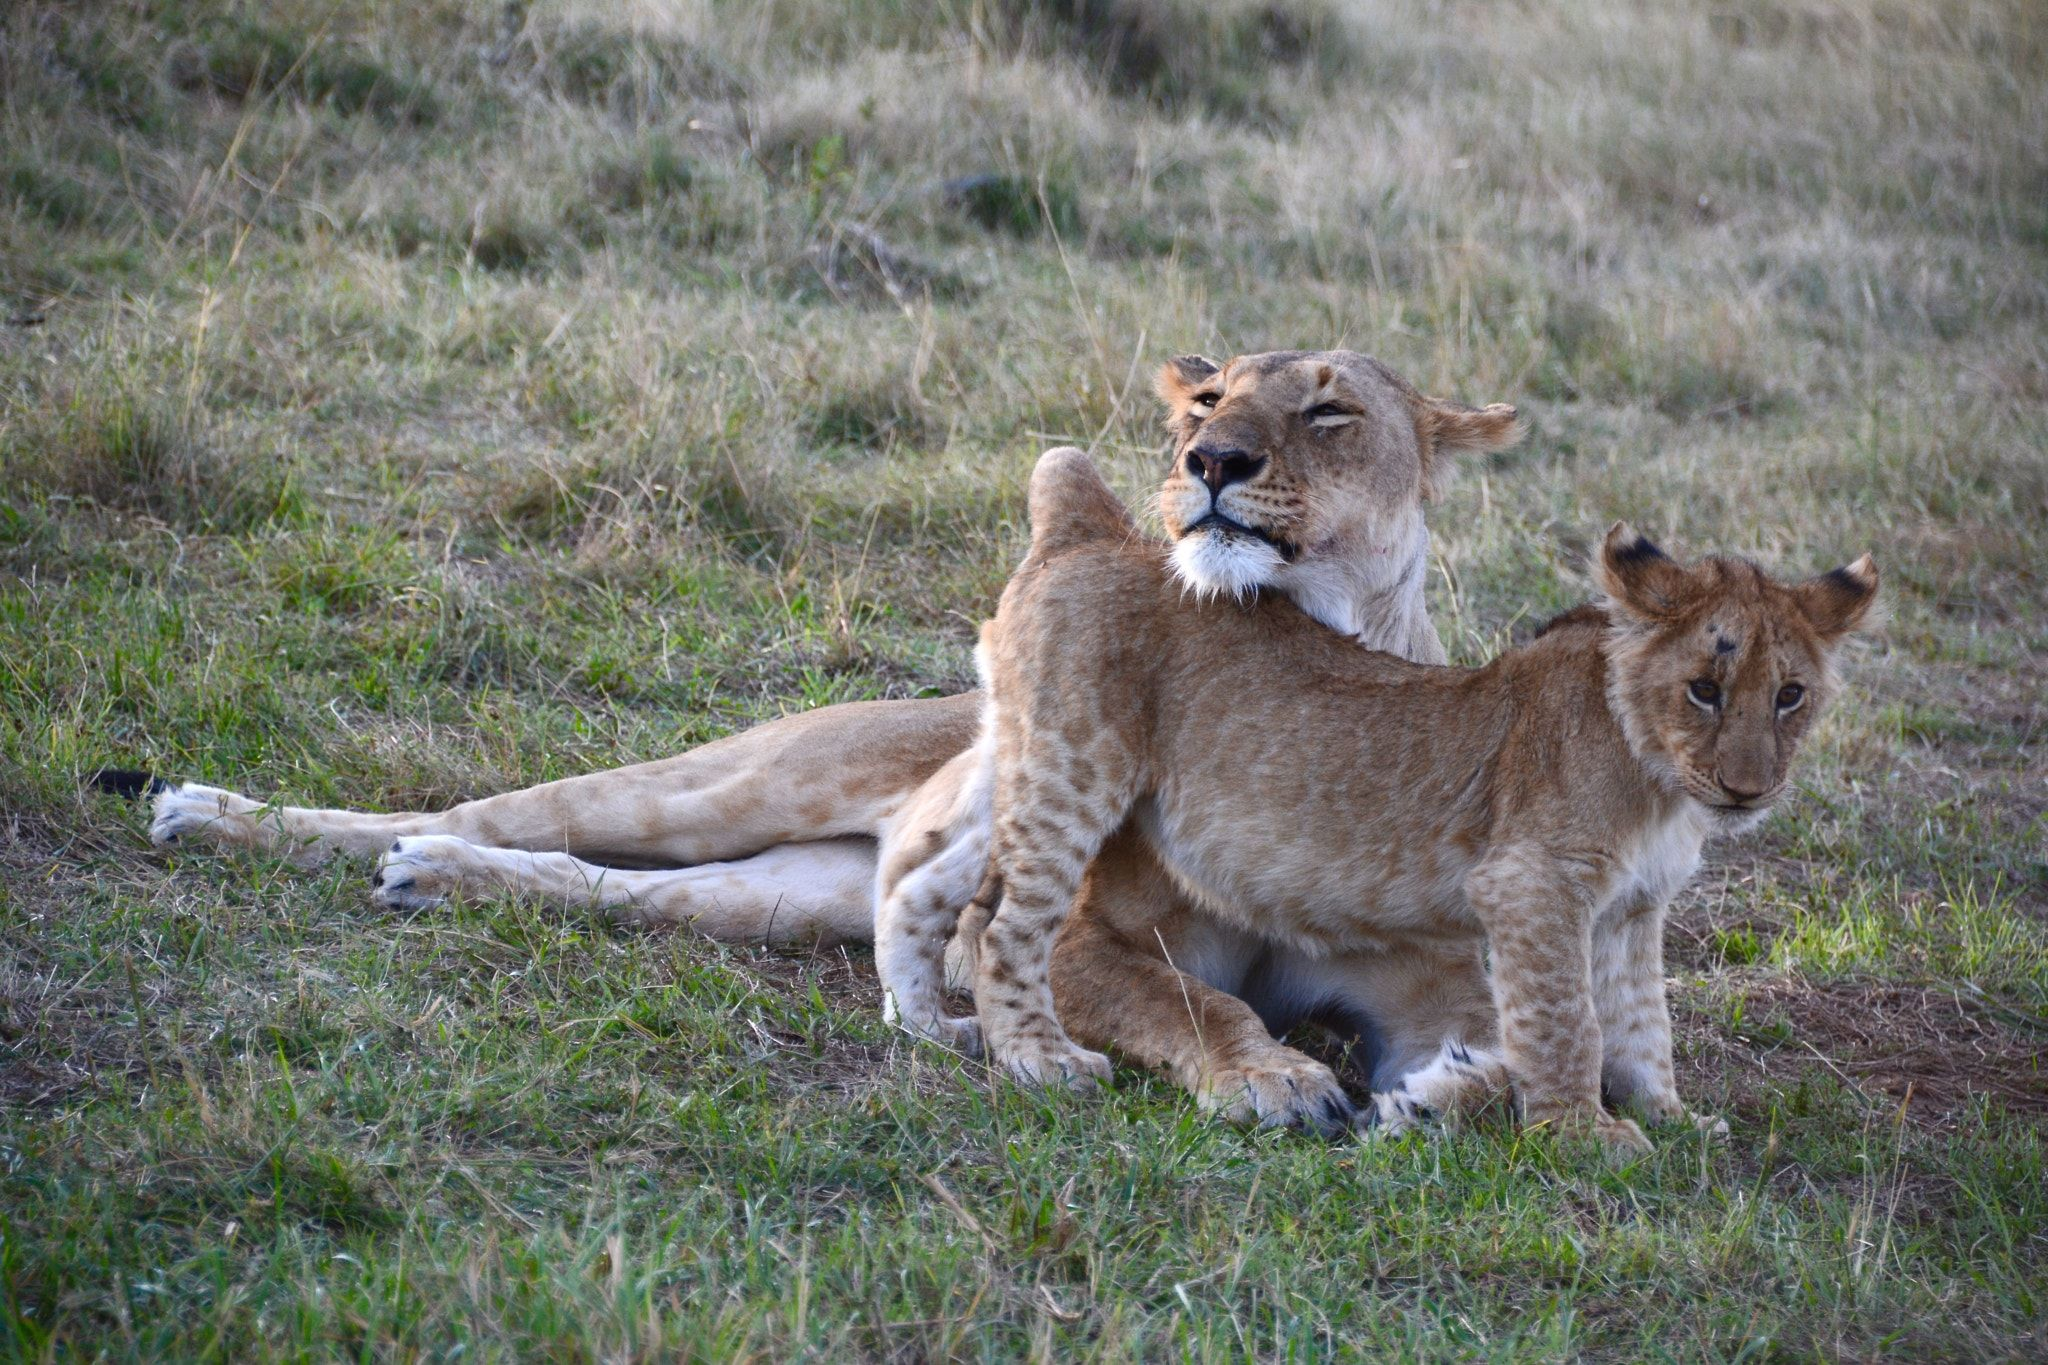 Under mom's protection. - Picture taken in Masai Mara, Kenya, in October.